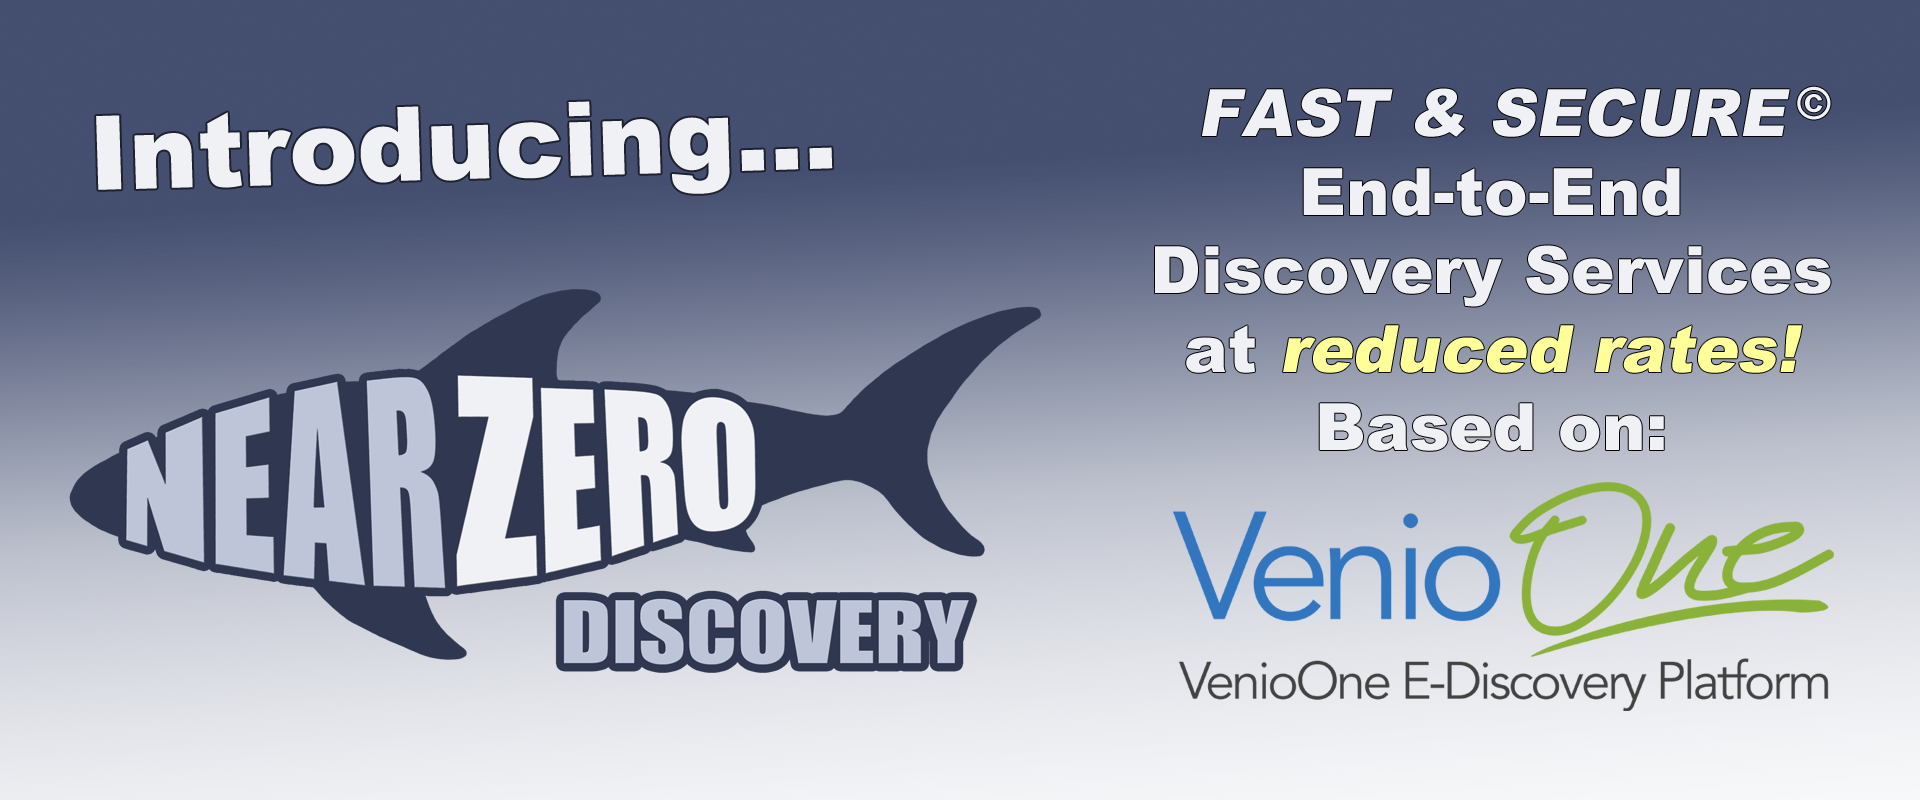 Introducing REW Computing Inc.'s NearZero Discovery service. Offering full end-to-end eDiscovery services for Newmarket, Toronto, the GTA, and Ontario, Canada.